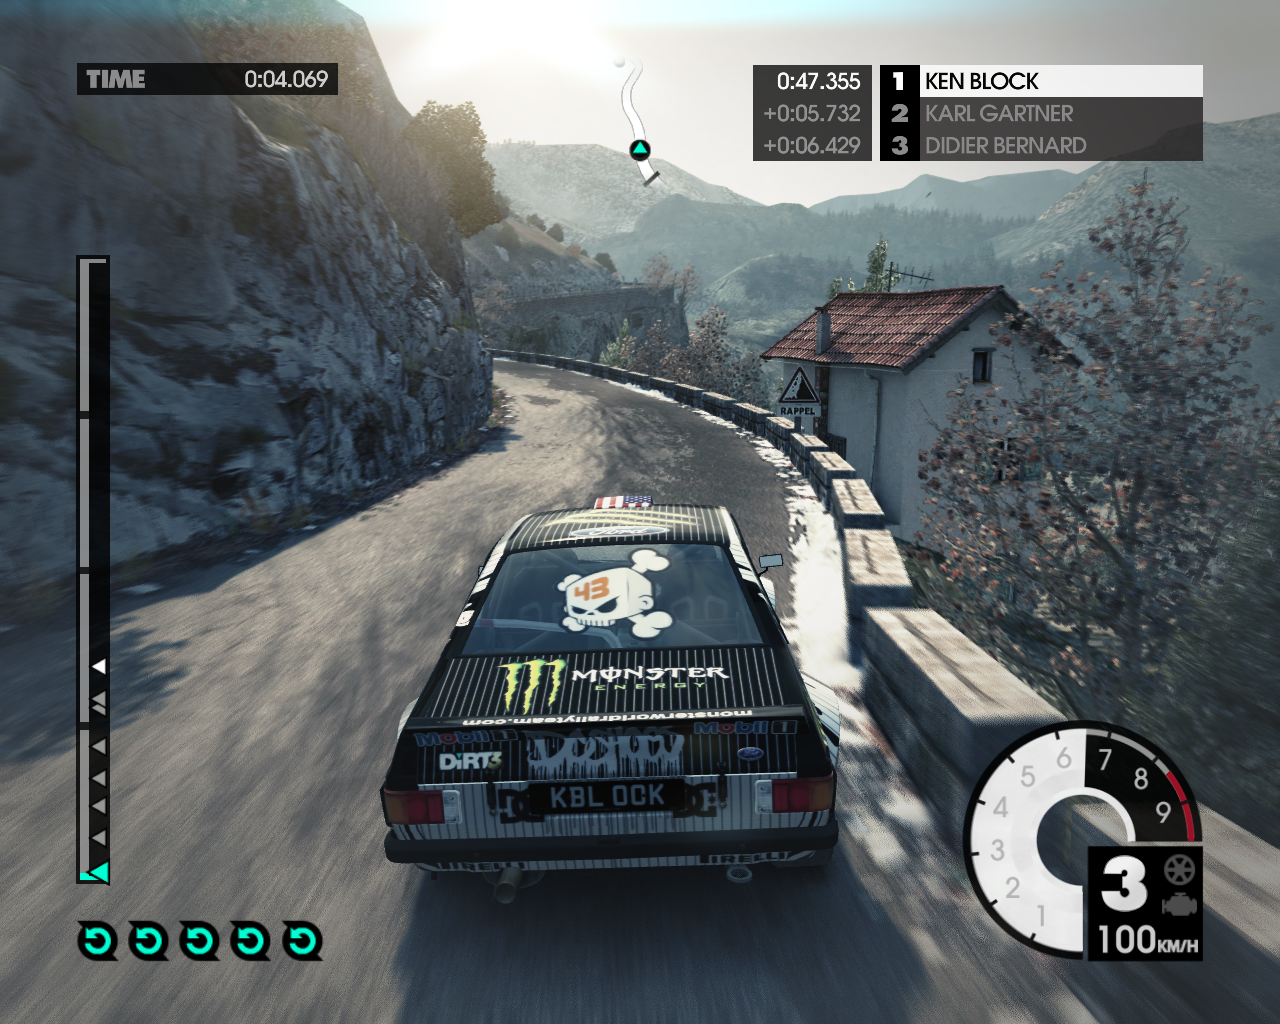 "DiRT 3: Complete Edition Windows Ford Escort Mk2 from <moby game=""Ken Block Special Pack"">Ken Block Special Pack</moby> DLC on a Monte Carlo track from <moby game=""Monte Carlo Track Pack"">Monte Carlo Track Pack</moby> DLC"